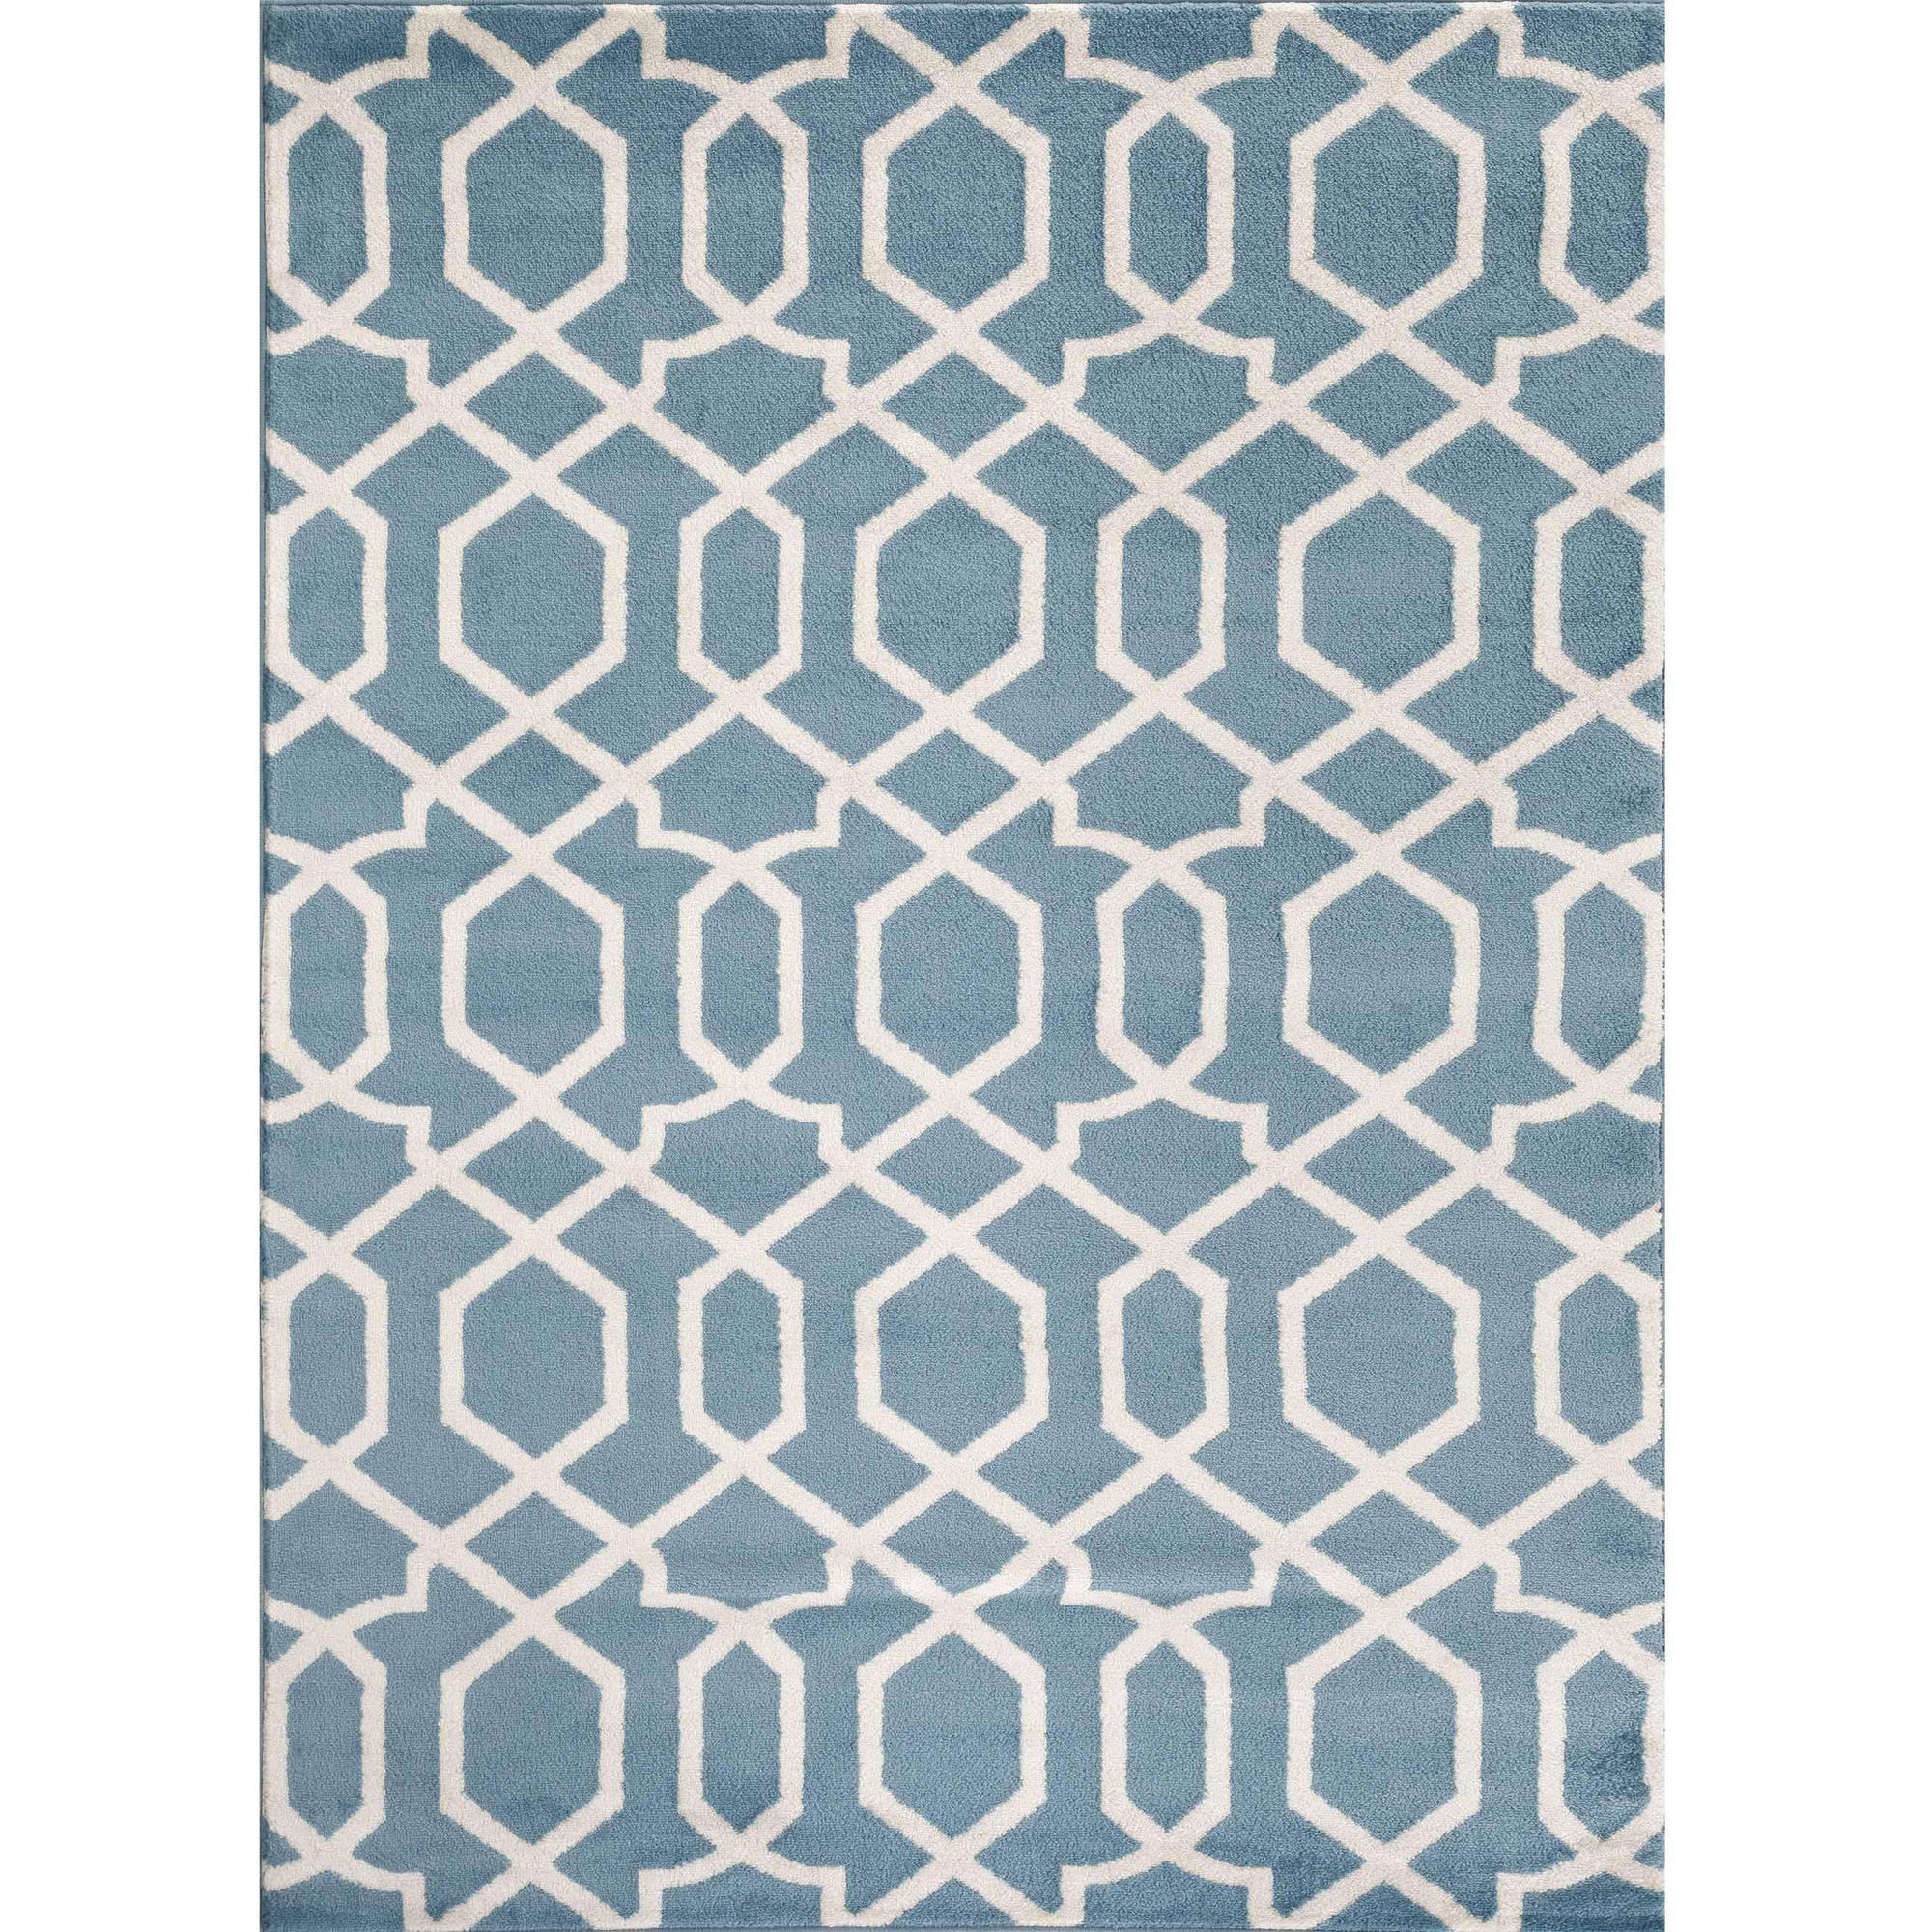 indoor blue accent p rug teal crabs outdoor rugs